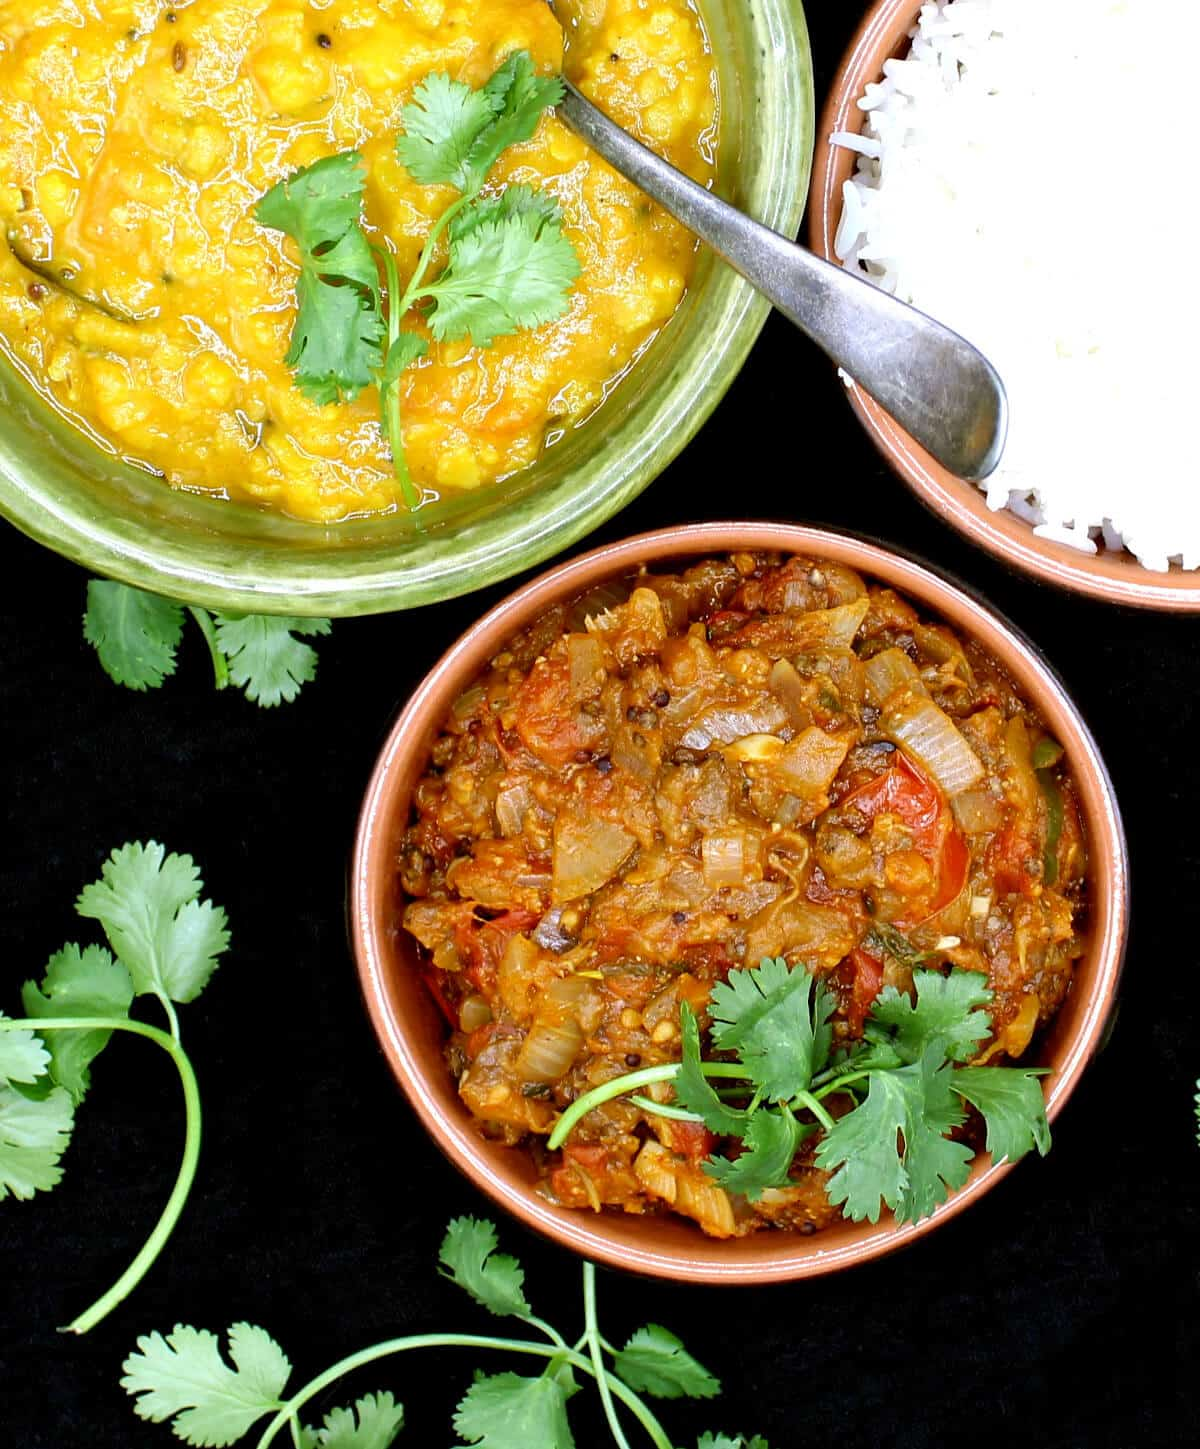 A clay dish with Baingan Bharta, mashed eggplants in a tomato onion sauce, garnished with cilantro. Next to it are tomato dal and rice with a spoon.